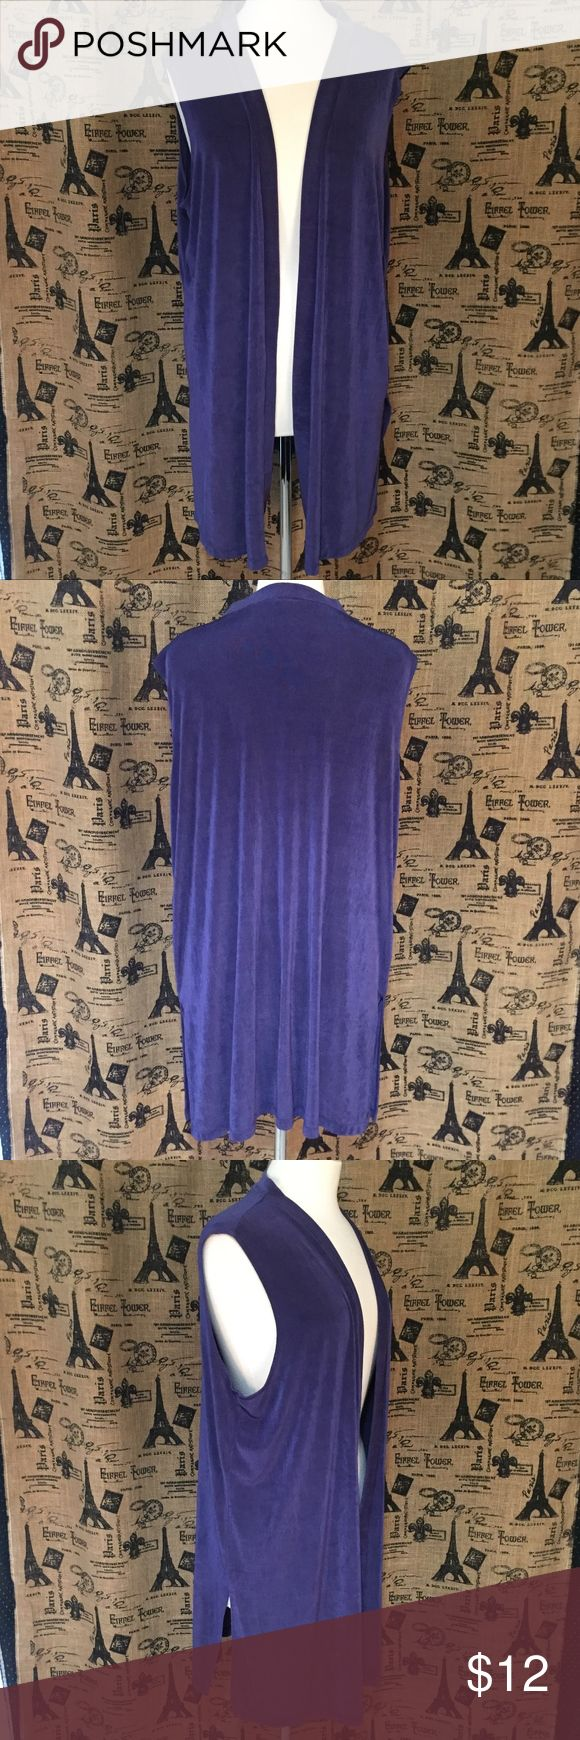 "Cityknits Purple Open Cardigan Top Size 1X Brand: Cityknits Size: 1X Description: Open sleeveless cardigan style top, needs a good steaming Condition: Very Good **Size tags vary, check measurements** Bust: 48"" Length: 32.5"" If more measurements are needed, please don't hesitate to ask! Bundle Discount Available! Reasonable offers welcome! No trades please.. Thanks for stopping by!! #Poshmark #Poshmarkapp #Poshmarkcloset Item #1963 Cityknits Tops Blouses"